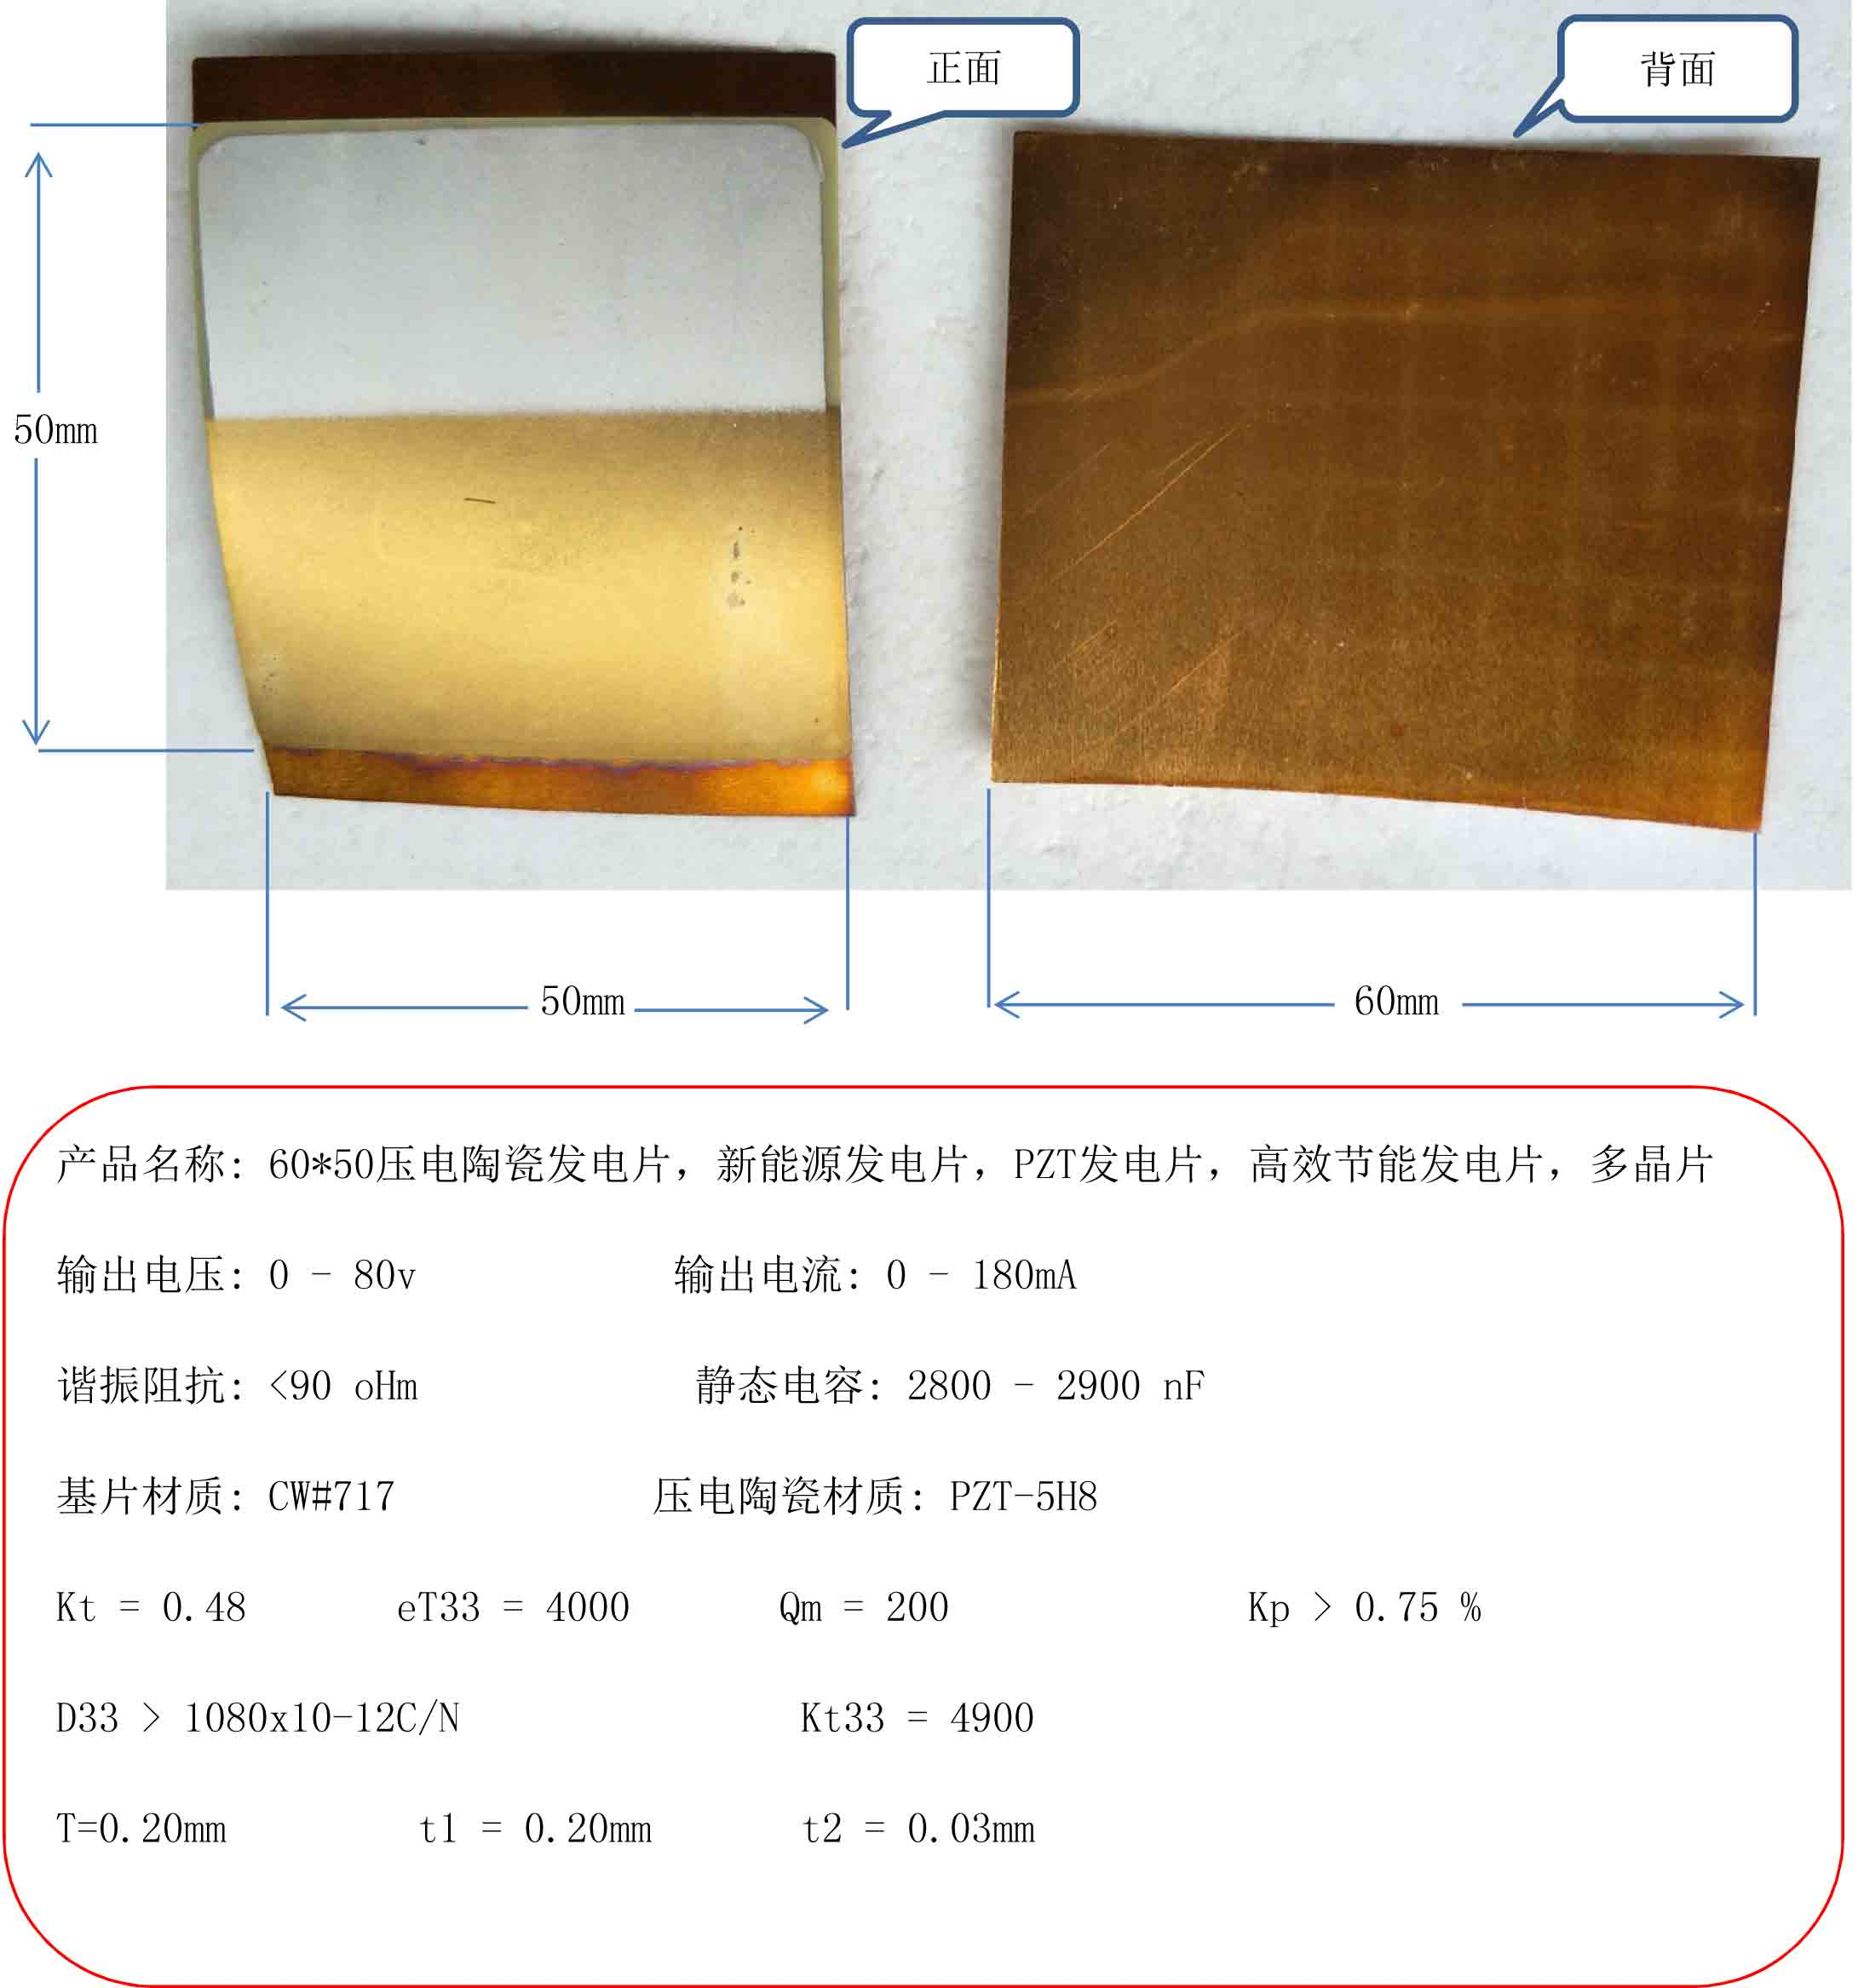 60*50 Piezoelectric Ceramic Power Generation, New Energy Power Generation, PZT Power Generation60*50 Piezoelectric Ceramic Power Generation, New Energy Power Generation, PZT Power Generation